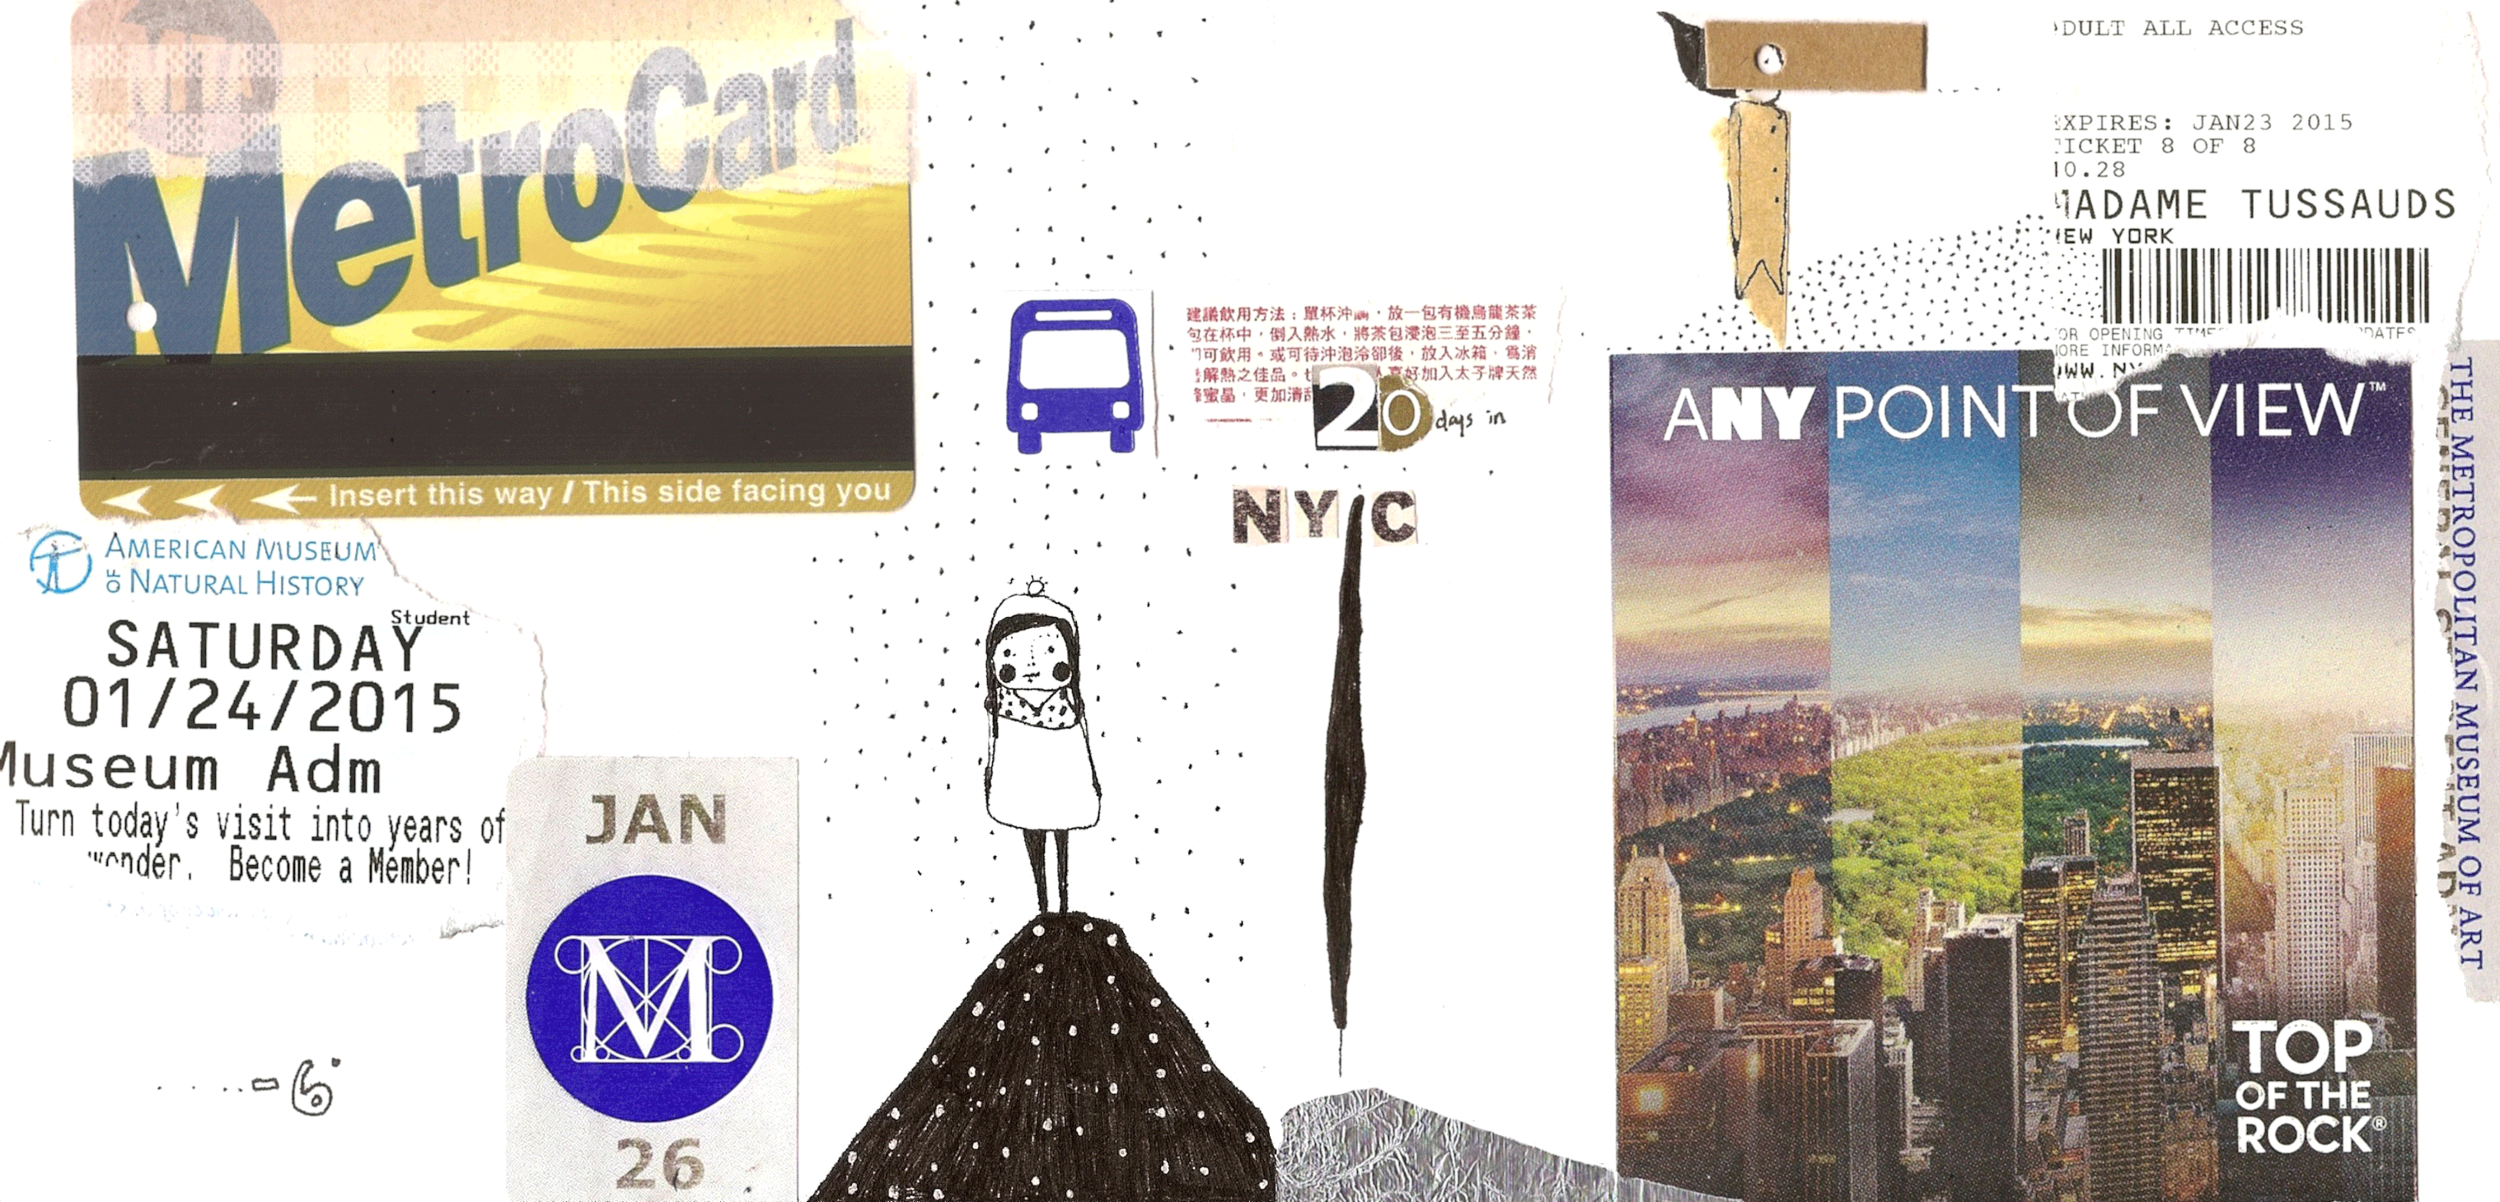 nyc20days.png